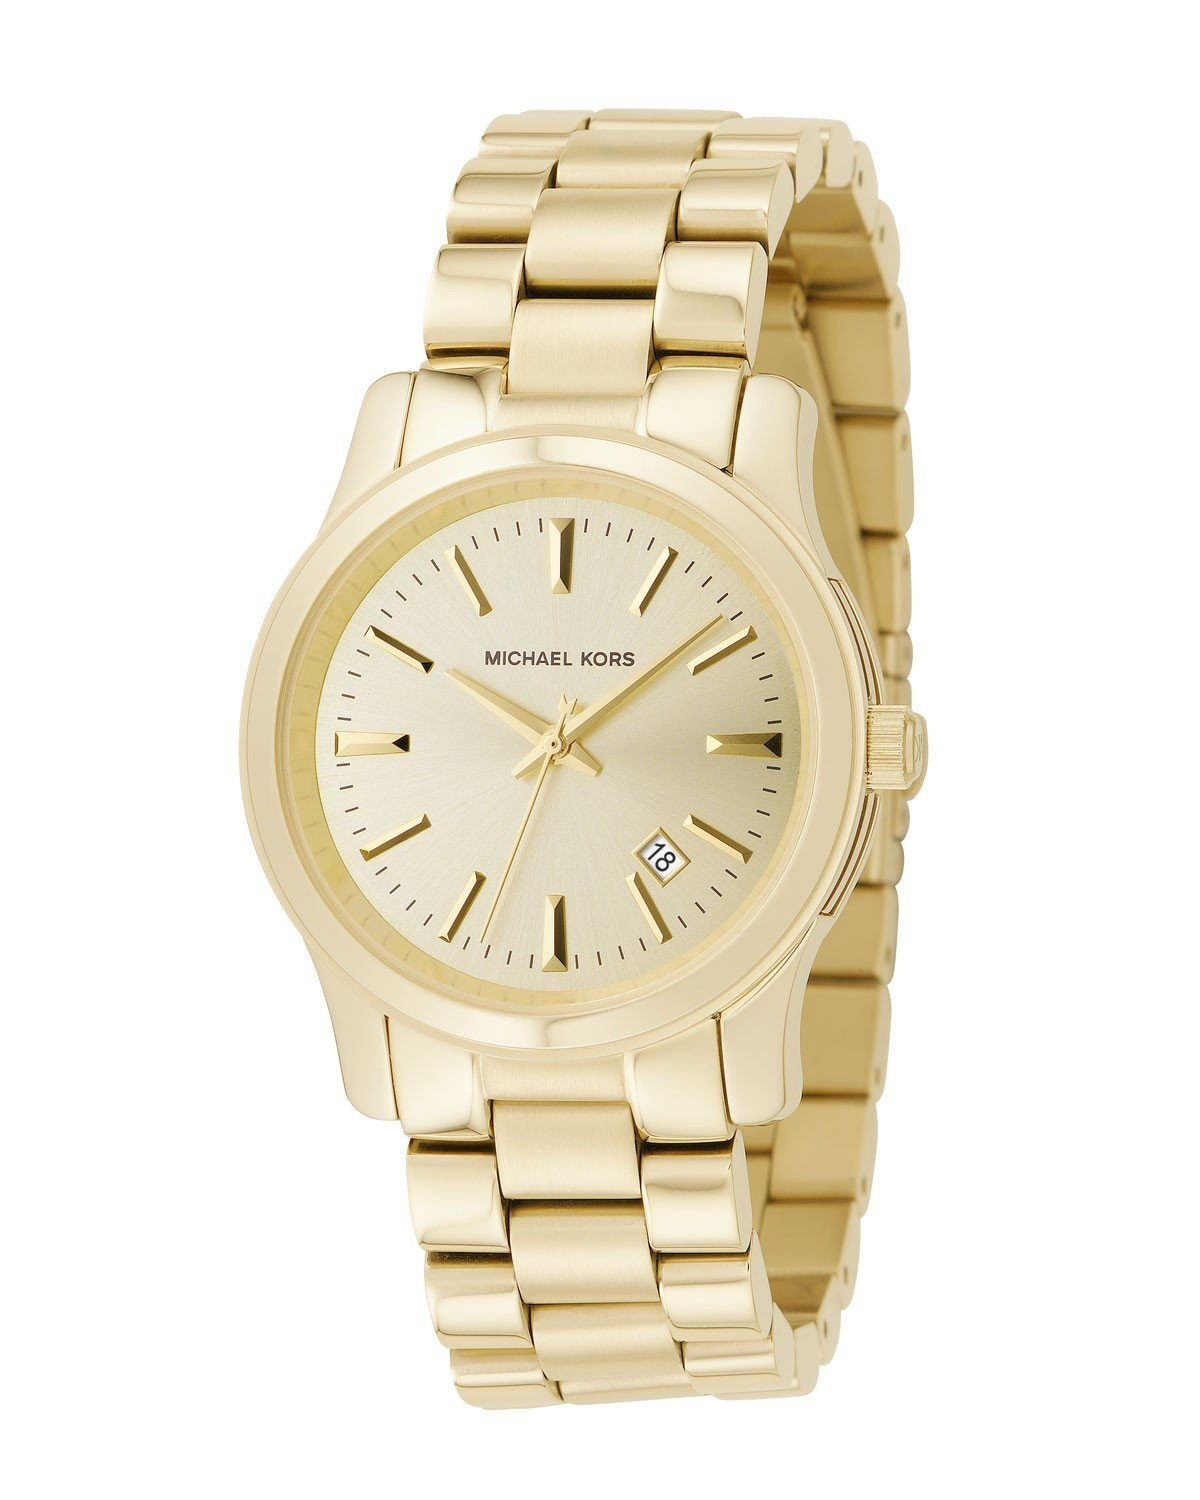 Buy Michael Kors Womens Watches at Macy's! FREE SHIPPING with $99 purchase! Shop for Michael Kors rose gold watch, leather watch & more styles. FREE SHIPPING with $99 purchase! Shop for Michael Kors rose gold watch, leather watch & more styles.